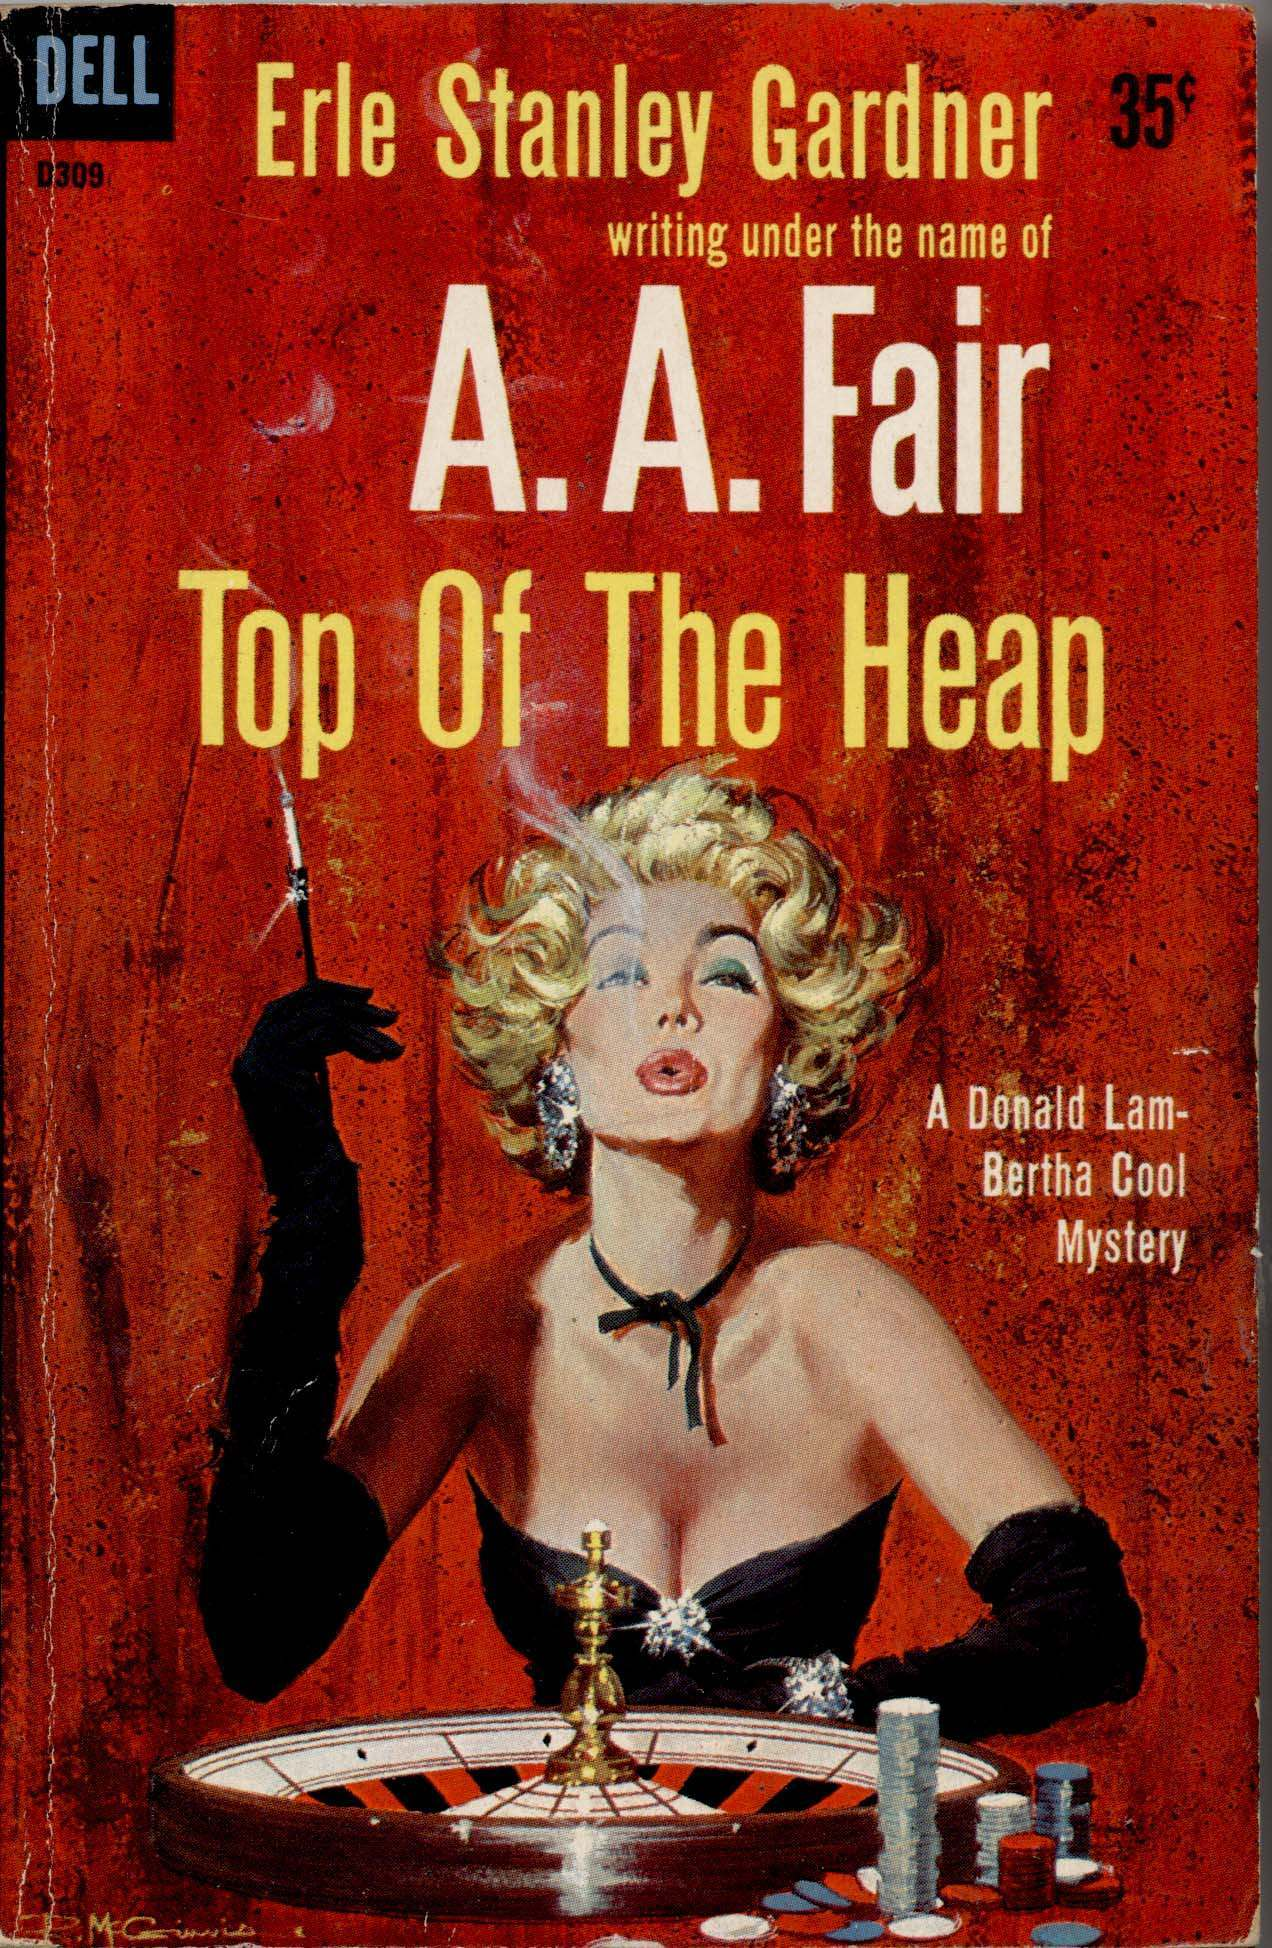 Top of the Heap by Erle Stanley Gardner, 1959.